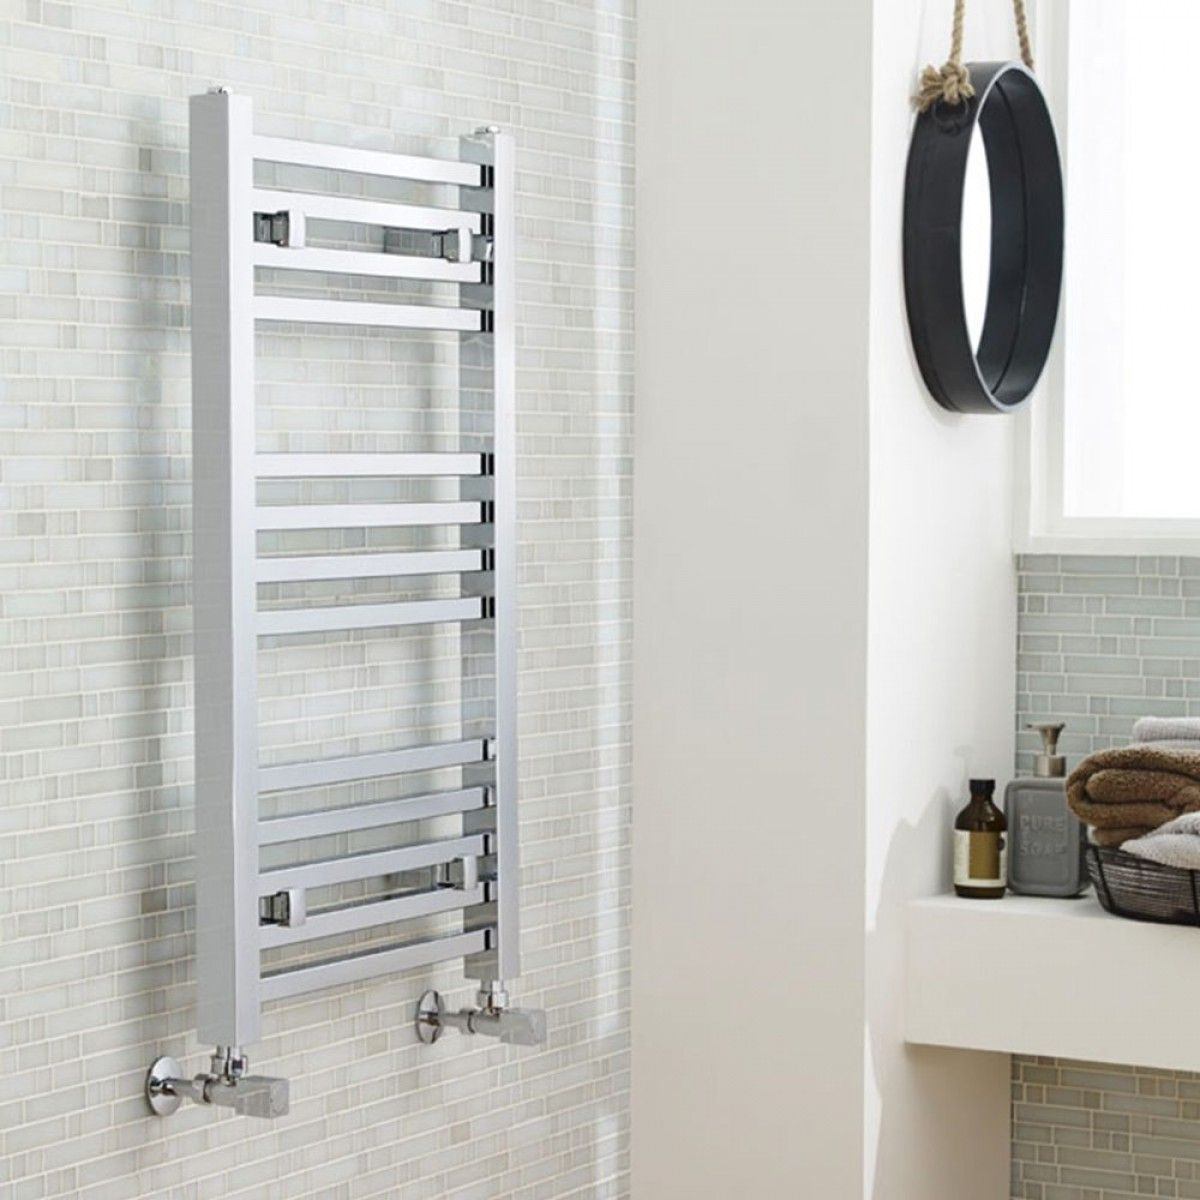 This luxury designer towel rail from Premier